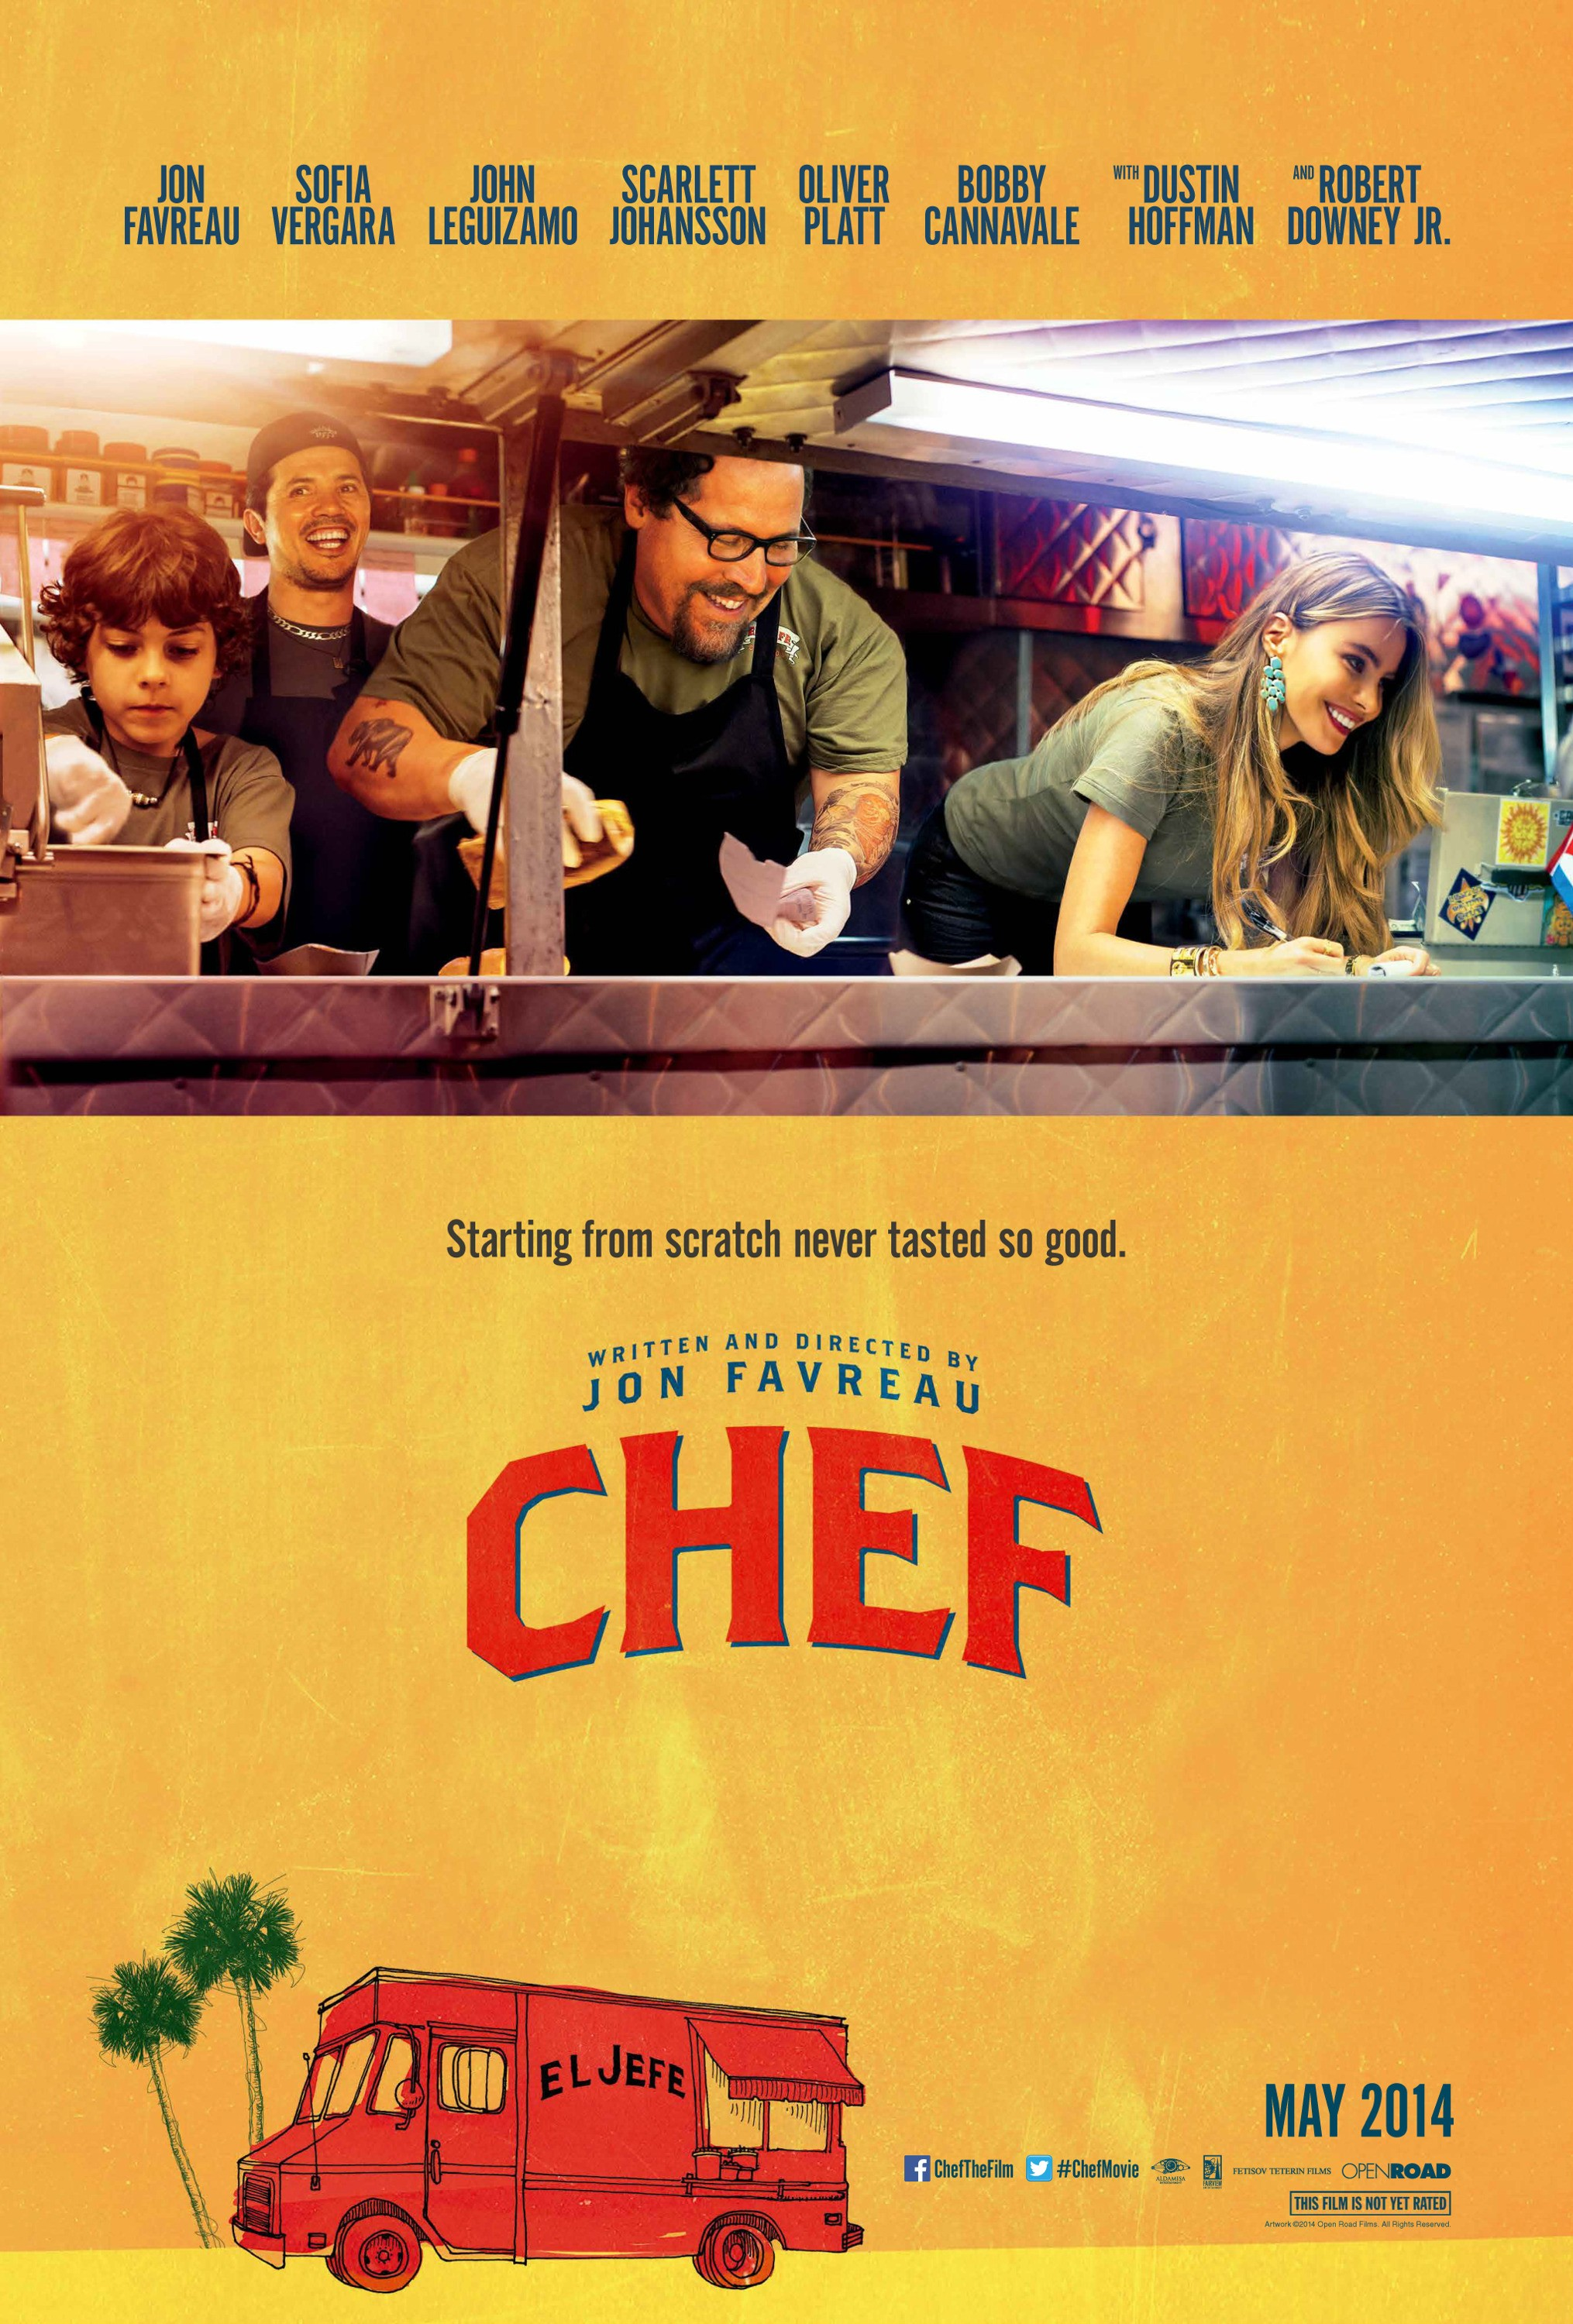 CHEF-Official Poster Banner PROMO XXLG-07ABRIL2014